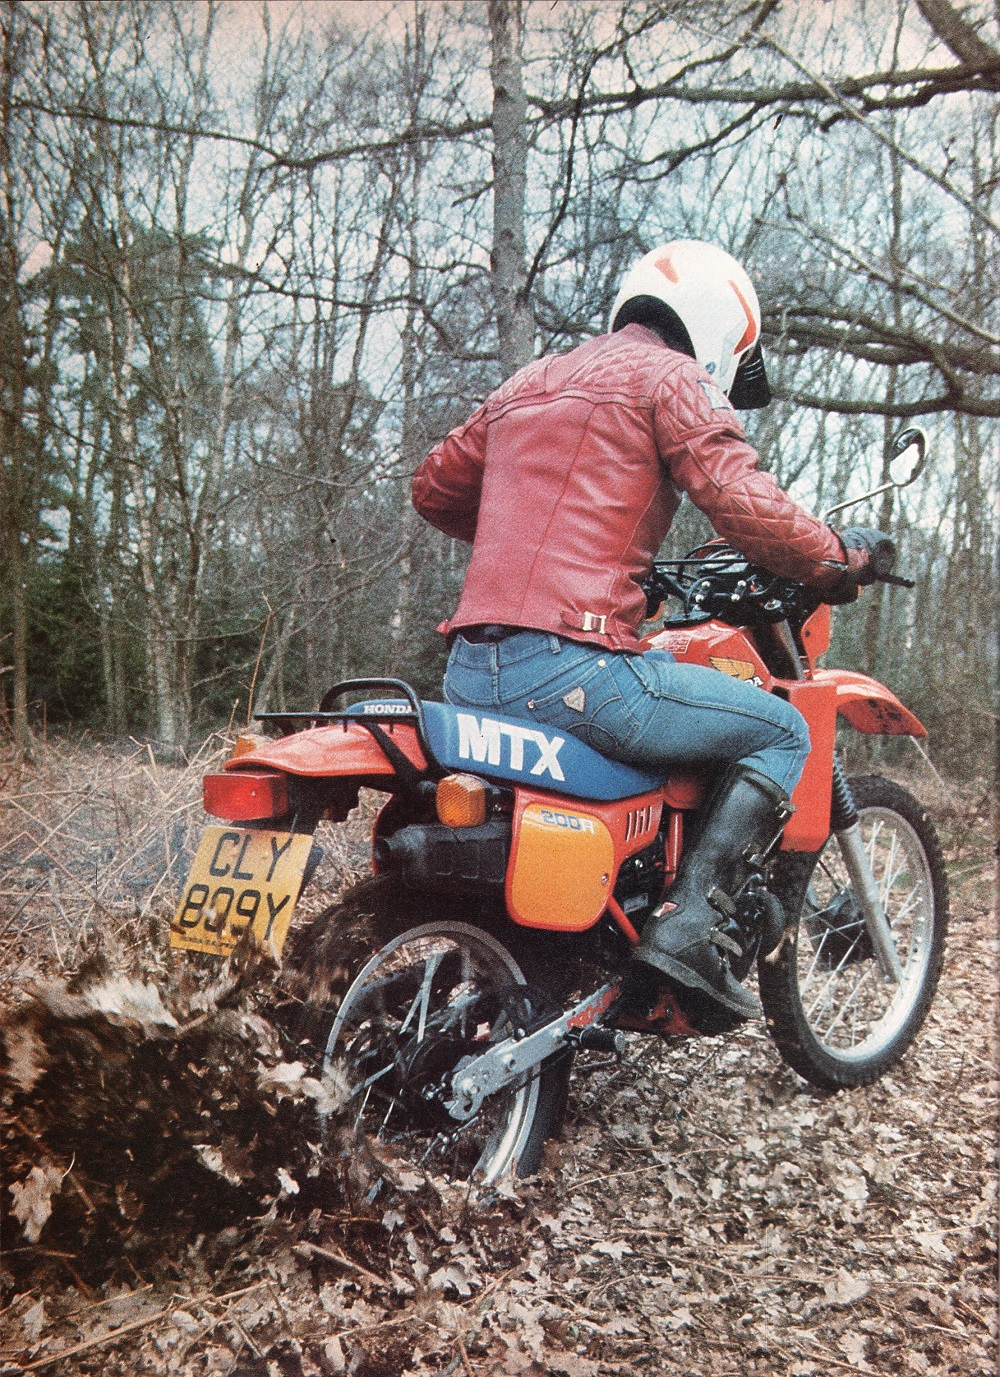 1983 Honda MTX200 road test.1.jpg